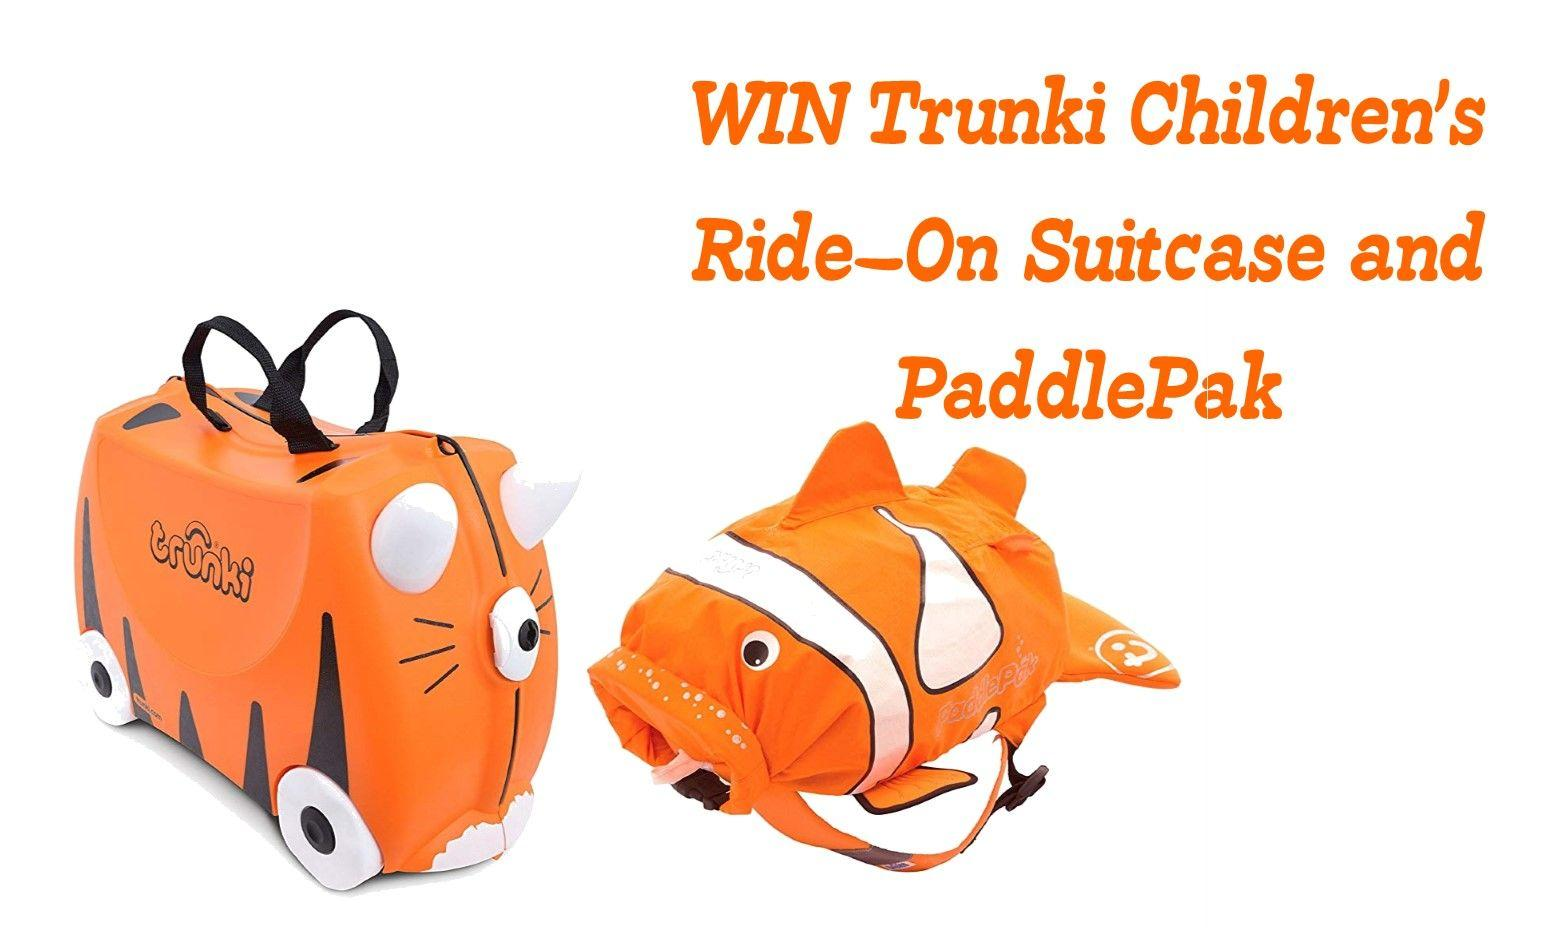 WIN Trunki Children's Ride-On Suitcase and PaddlePak